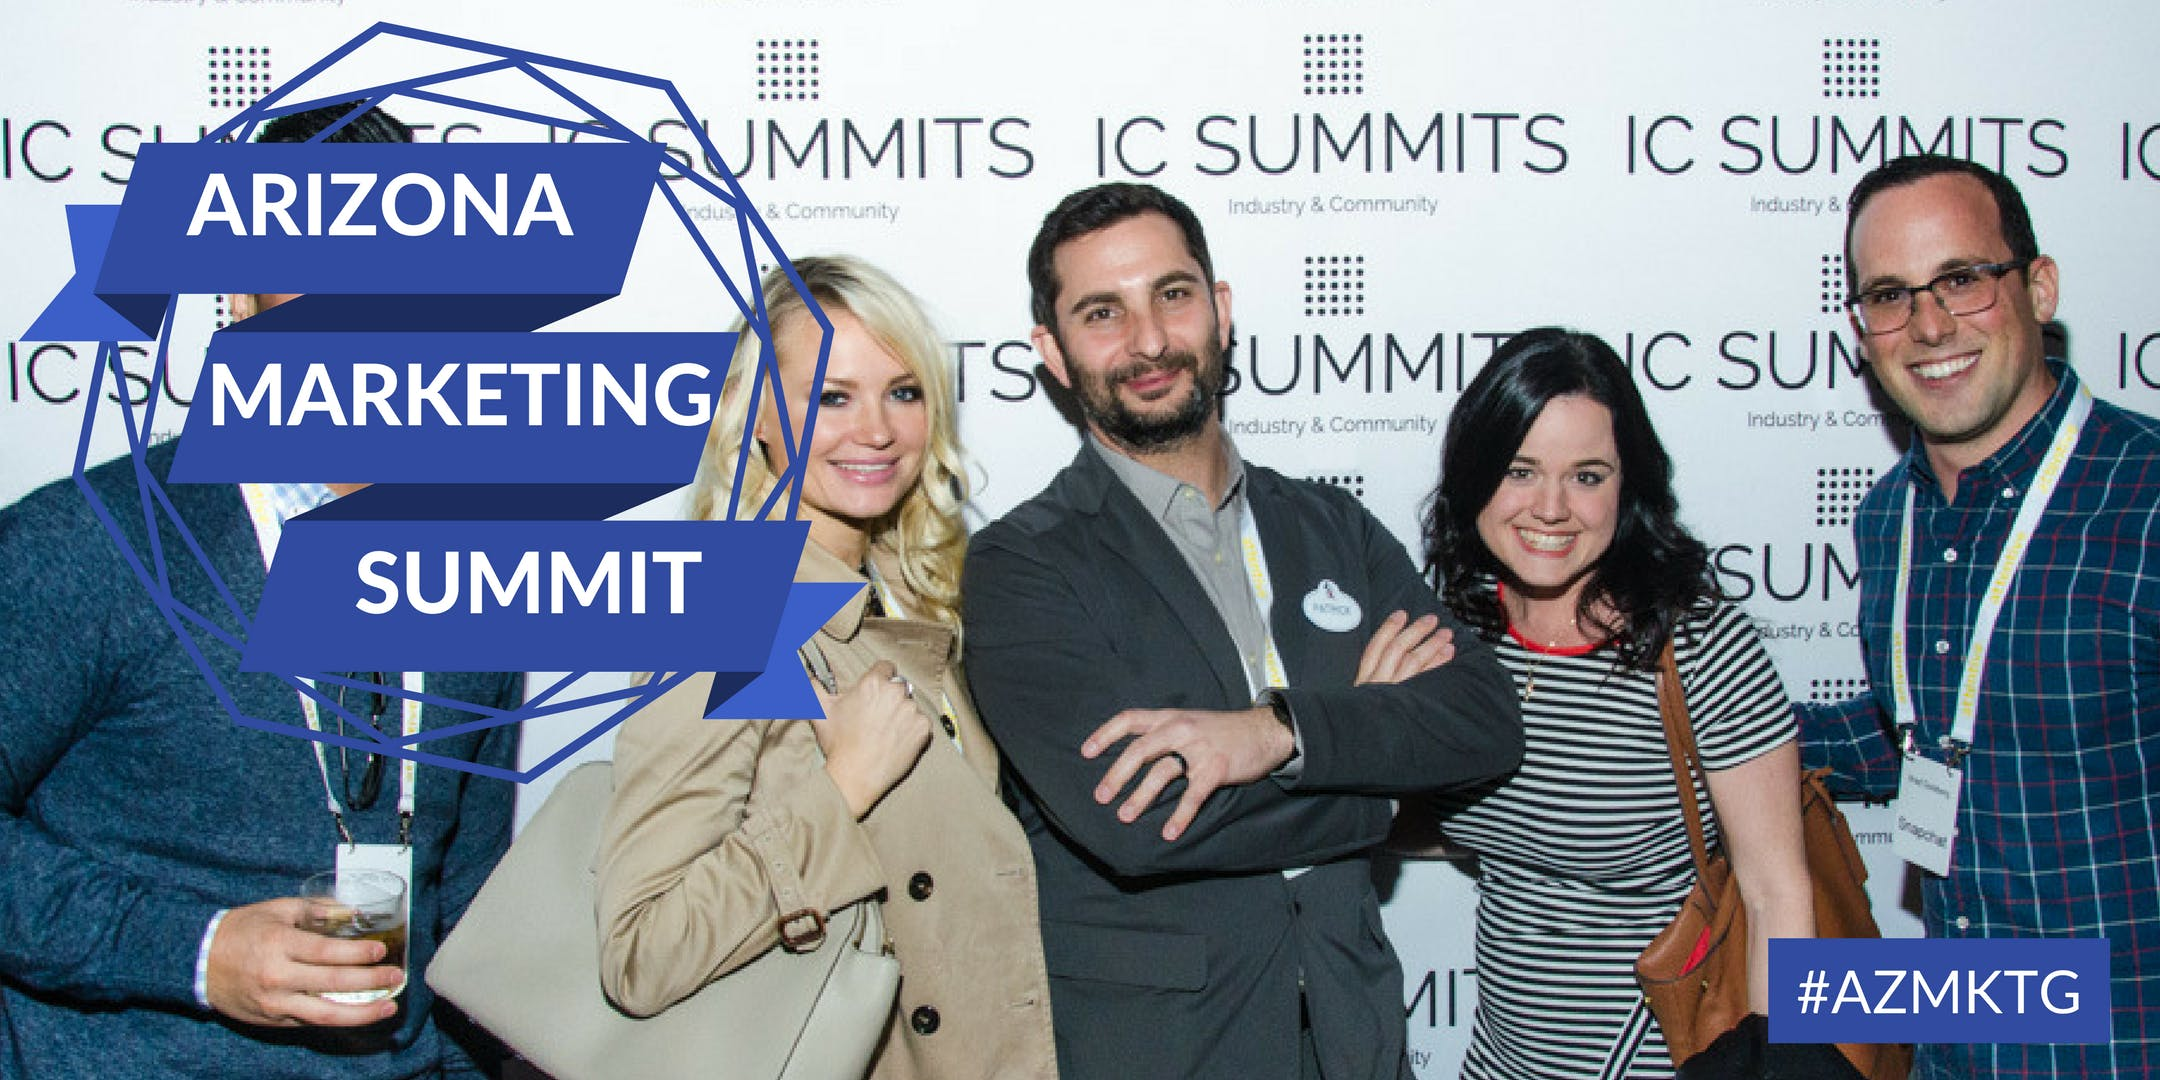 Arizona Marketing Summit